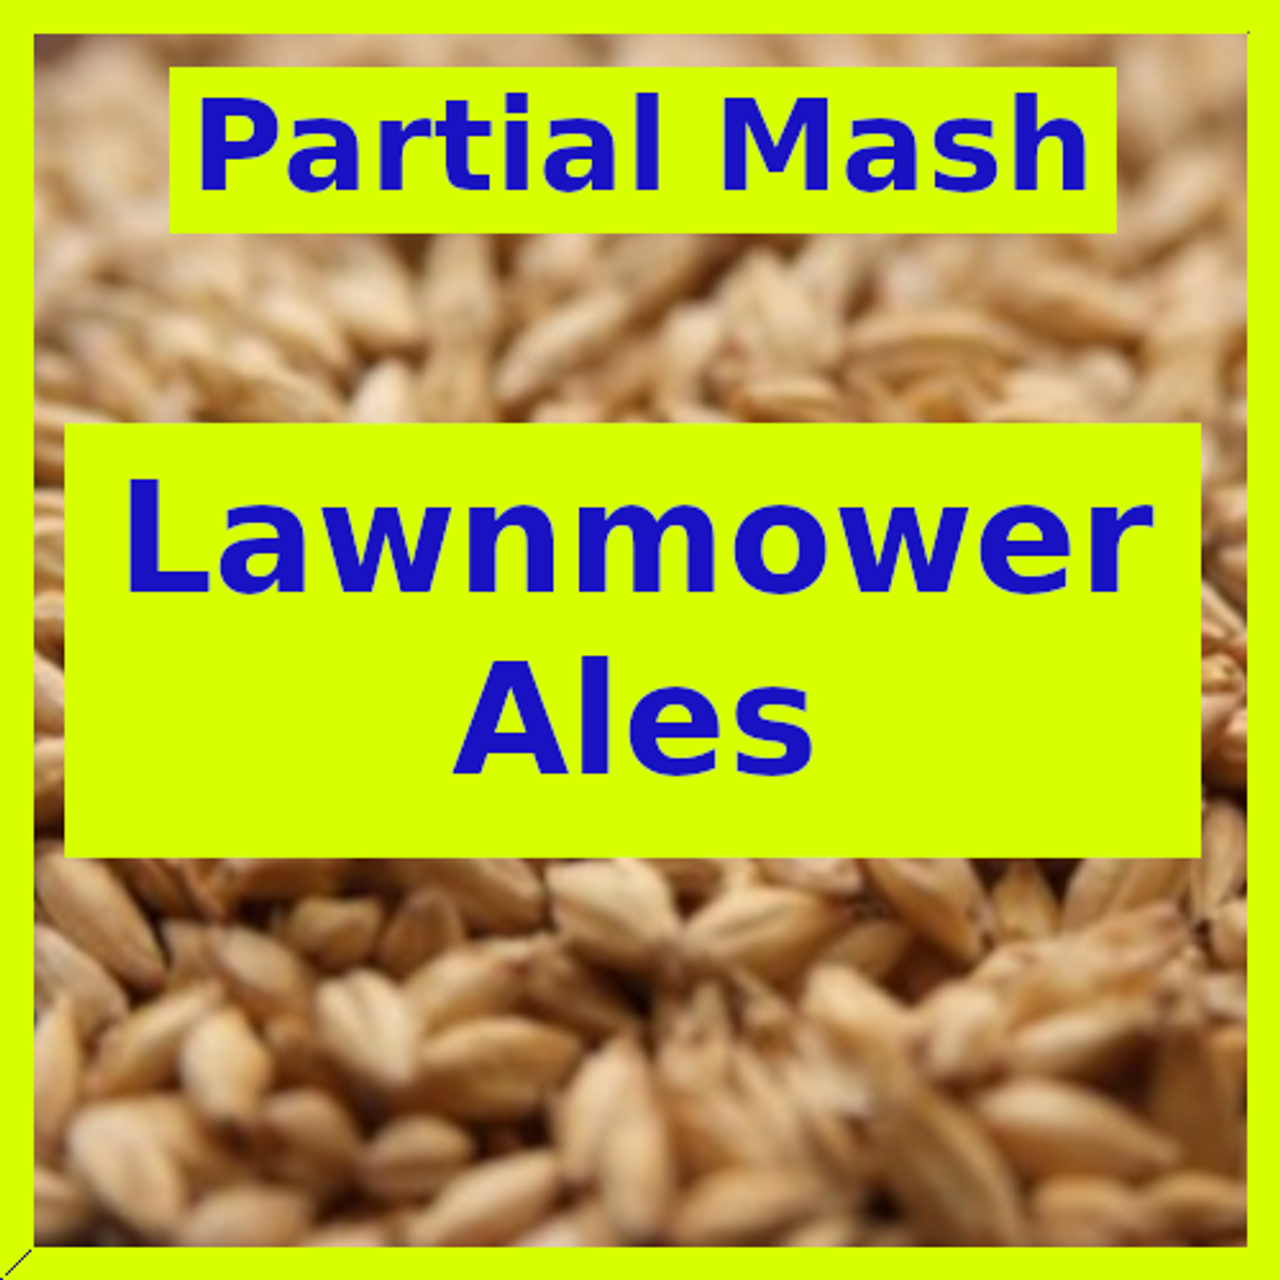 Lawnmower Ales - Partial Mash